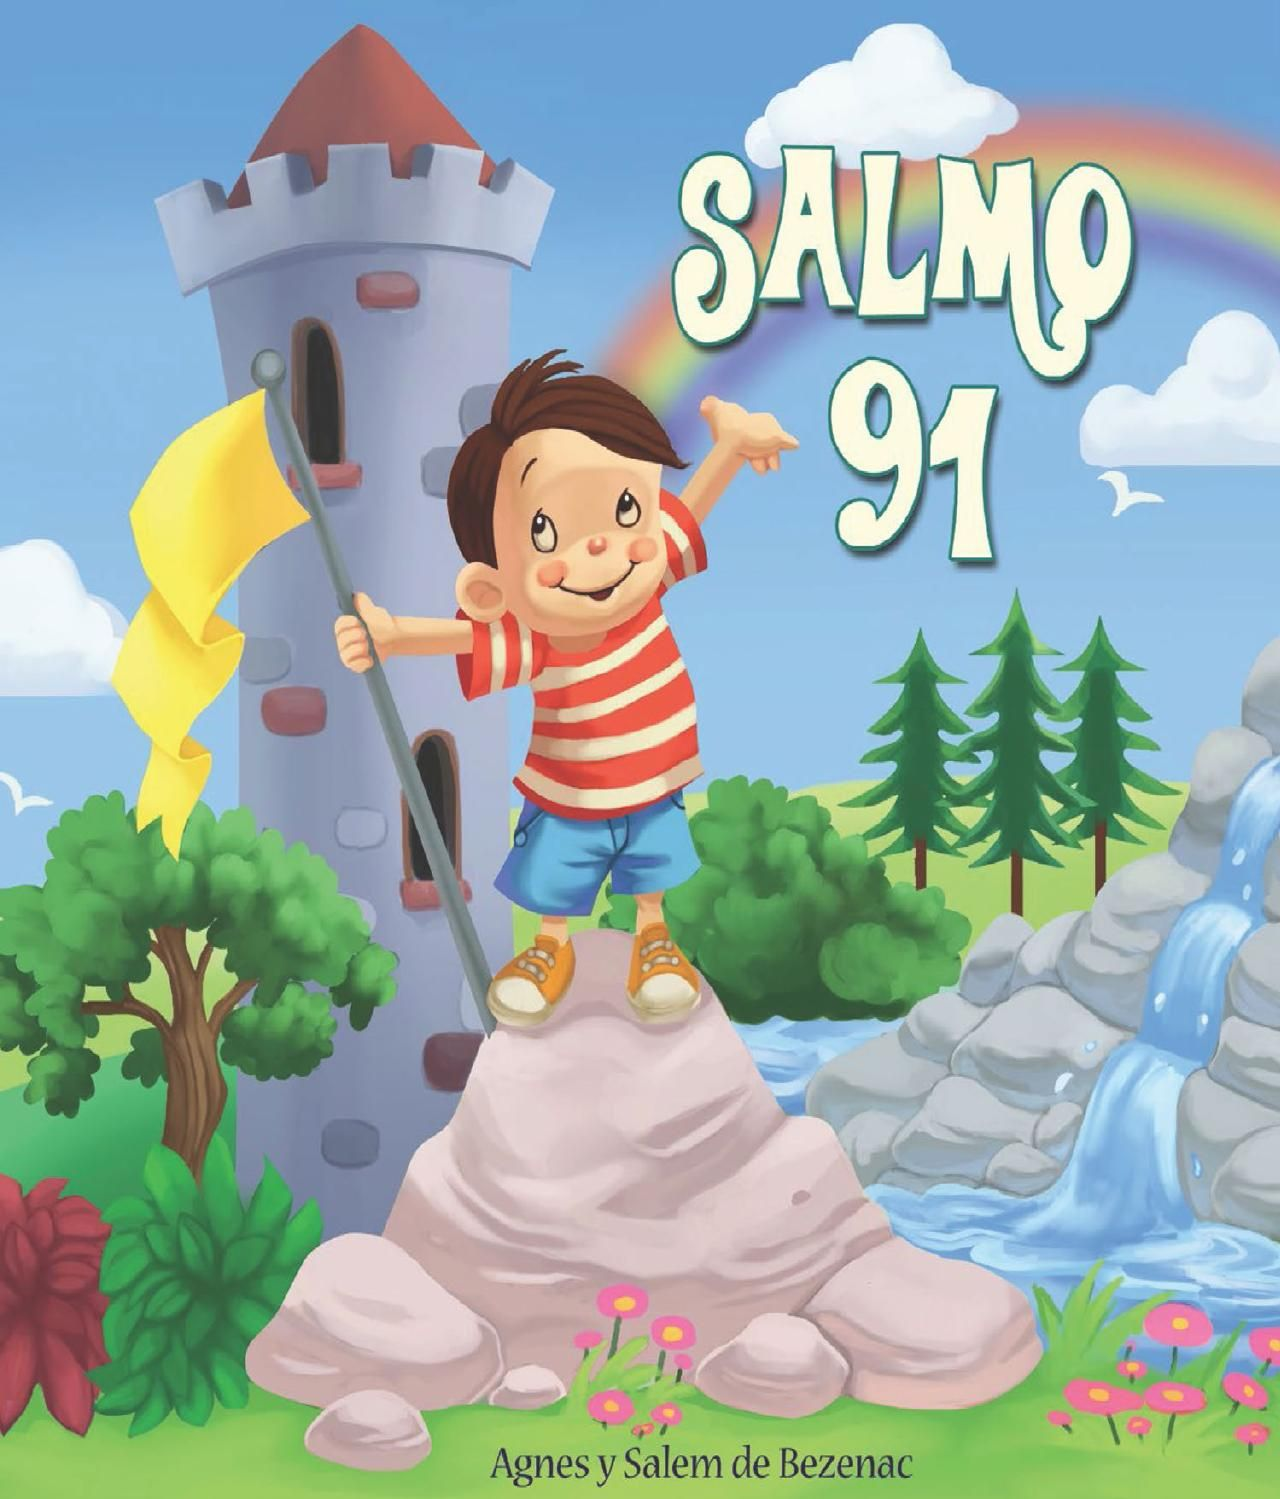 Salmos 91 Psalm 91 Verses For Kids Coloring For Kids